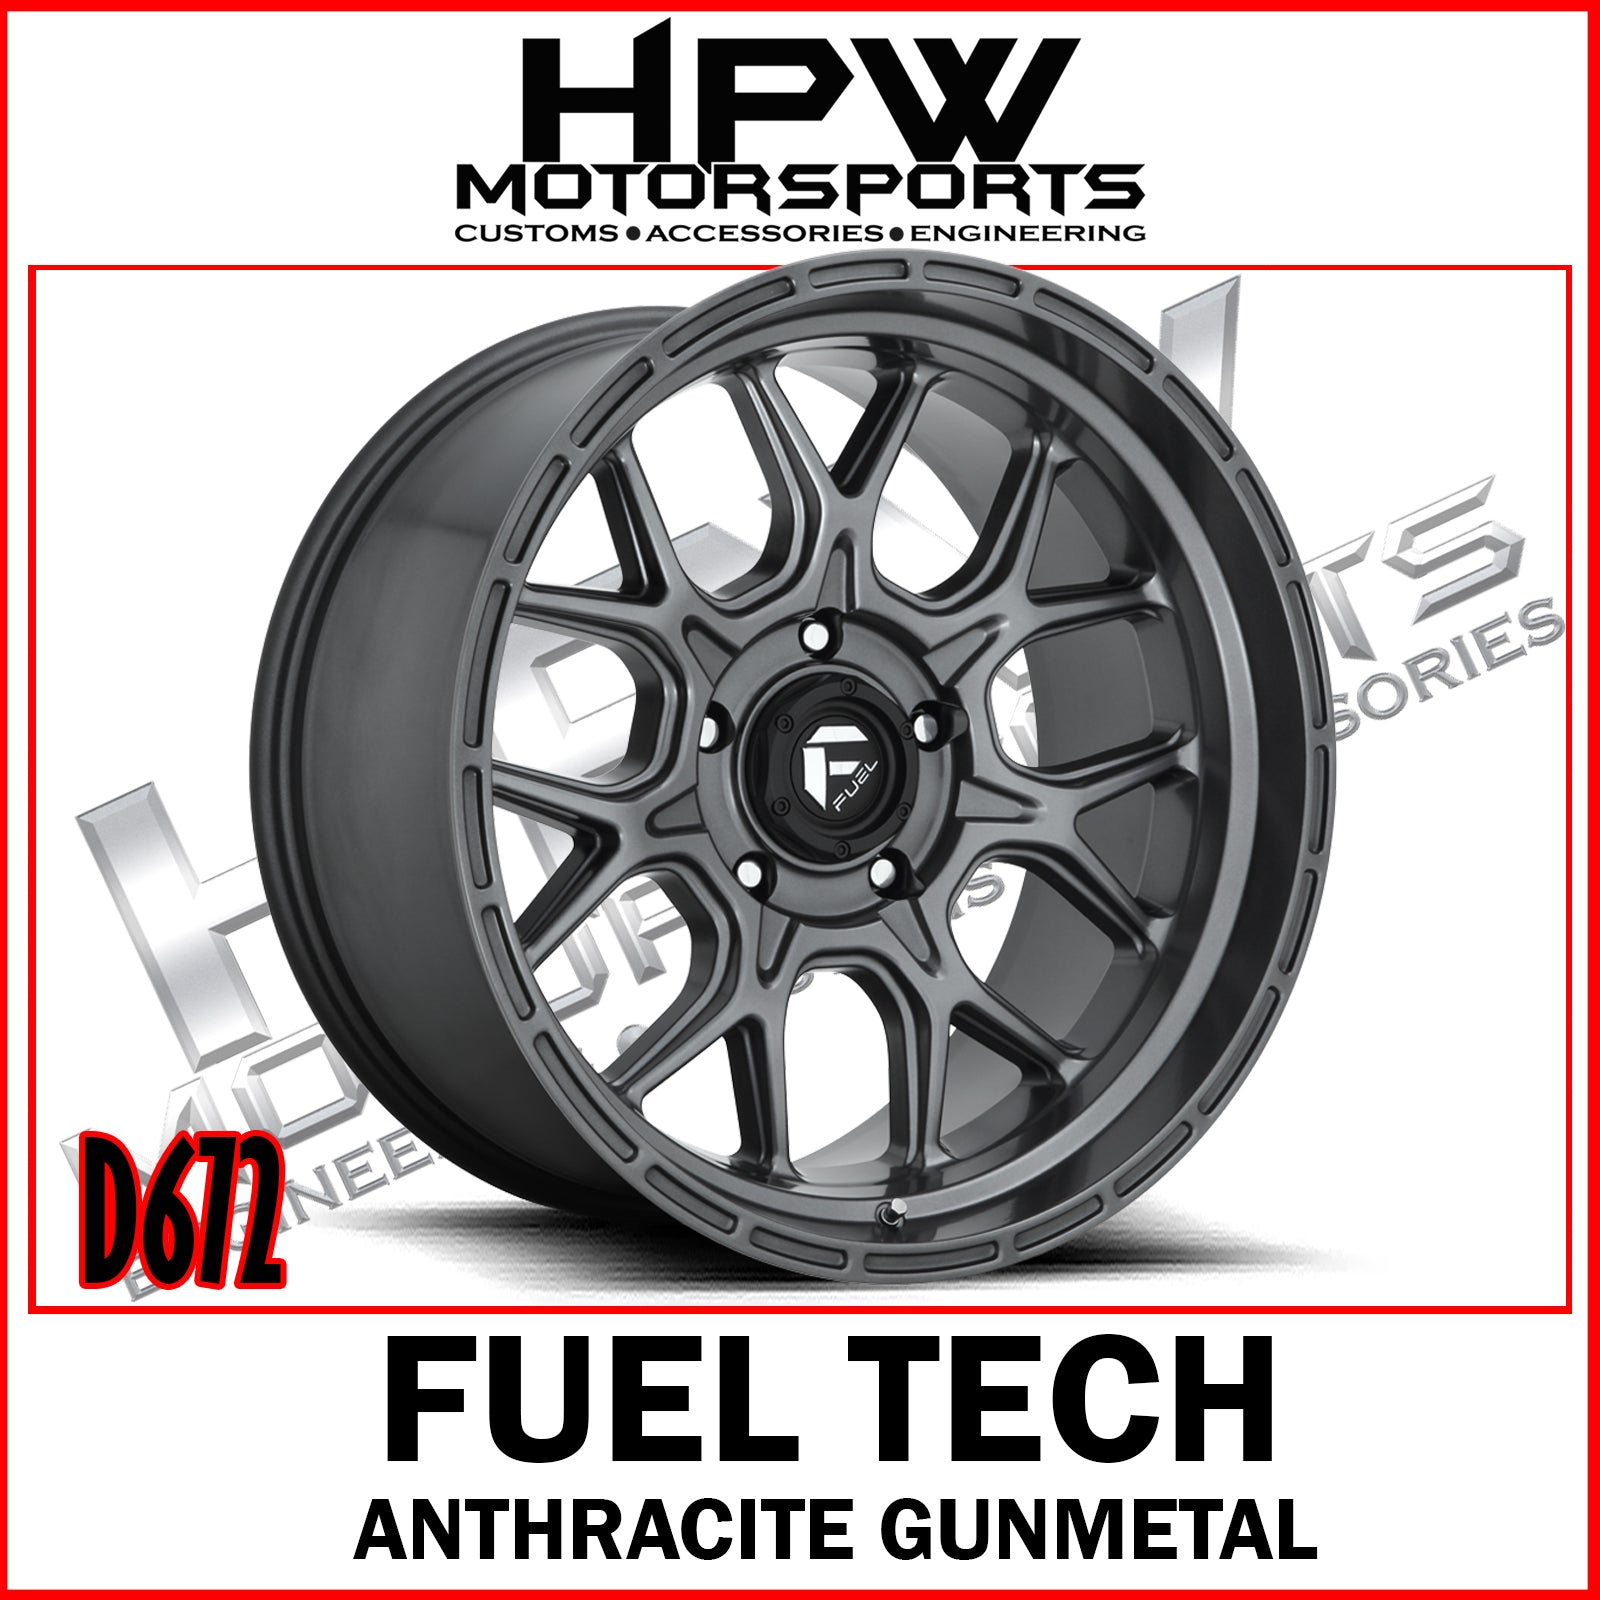 (20x10 -18) D672 FUEL TECH ANTHRACITE GUNMETAL - Set of 4